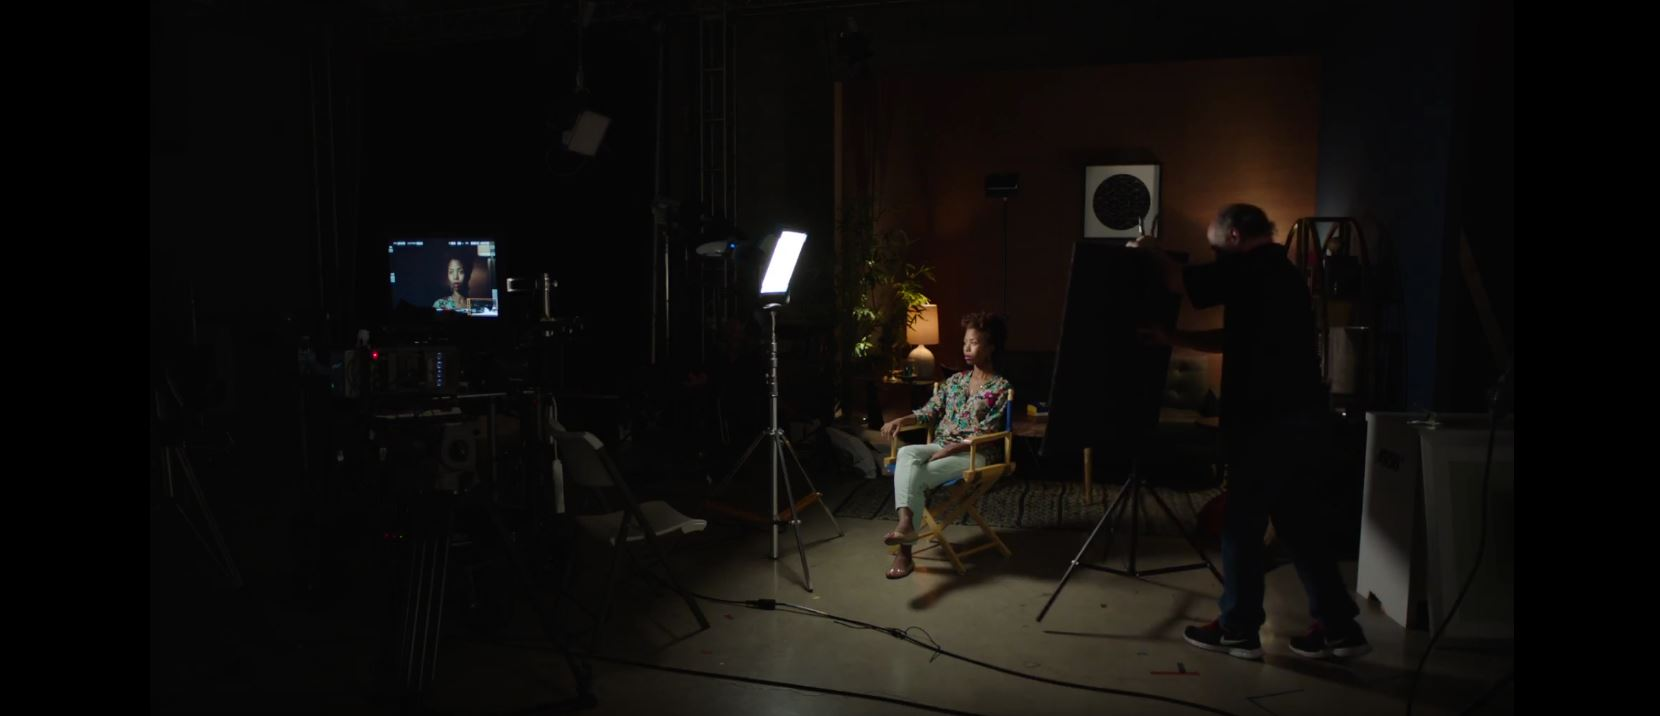 ARRI Lighting Kit – Dramatic Lighting